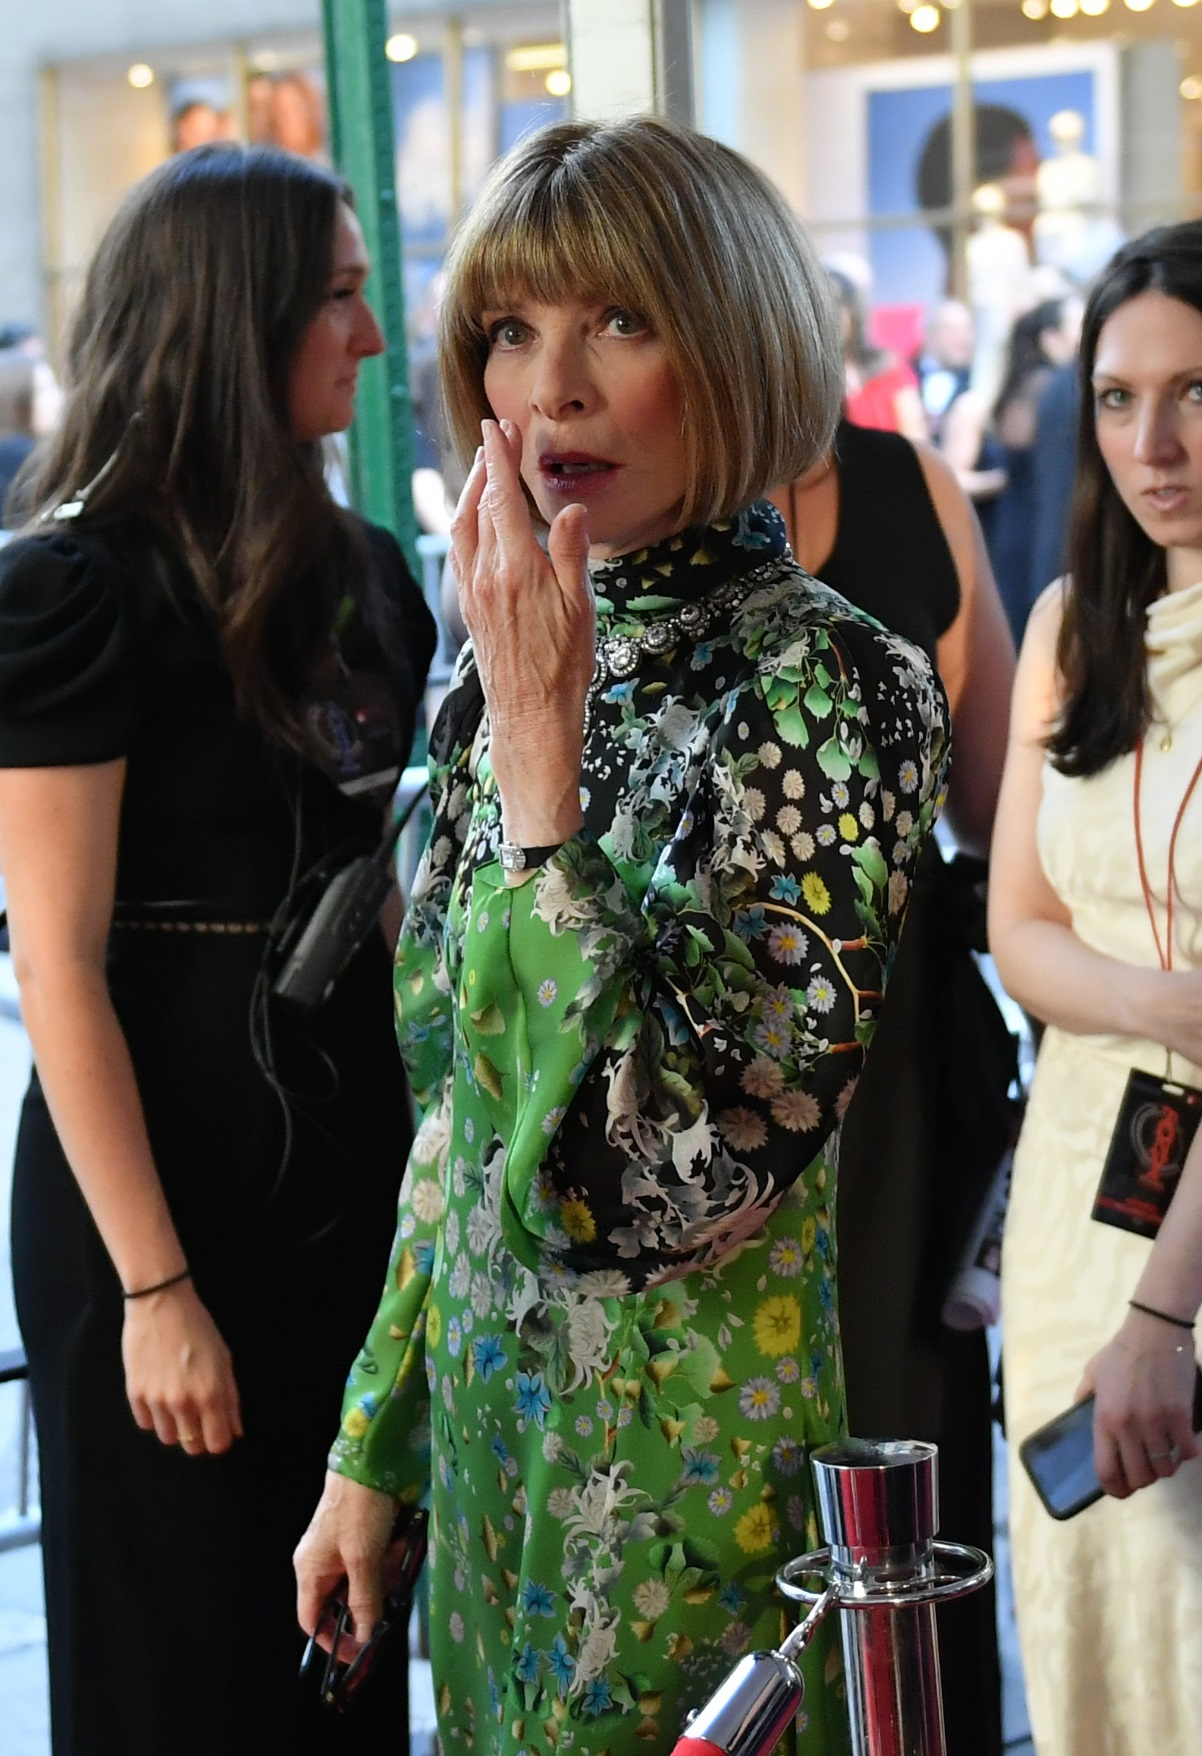 NEW YORK, NEW YORK - JUNE 09: Anna Wintour attends the 73rd Annual Tony Awards at Radio City Music Hall on June 09, 2019 in New York City. (Photo by Mike Coppola/Getty Images for Tony Awards Productions)